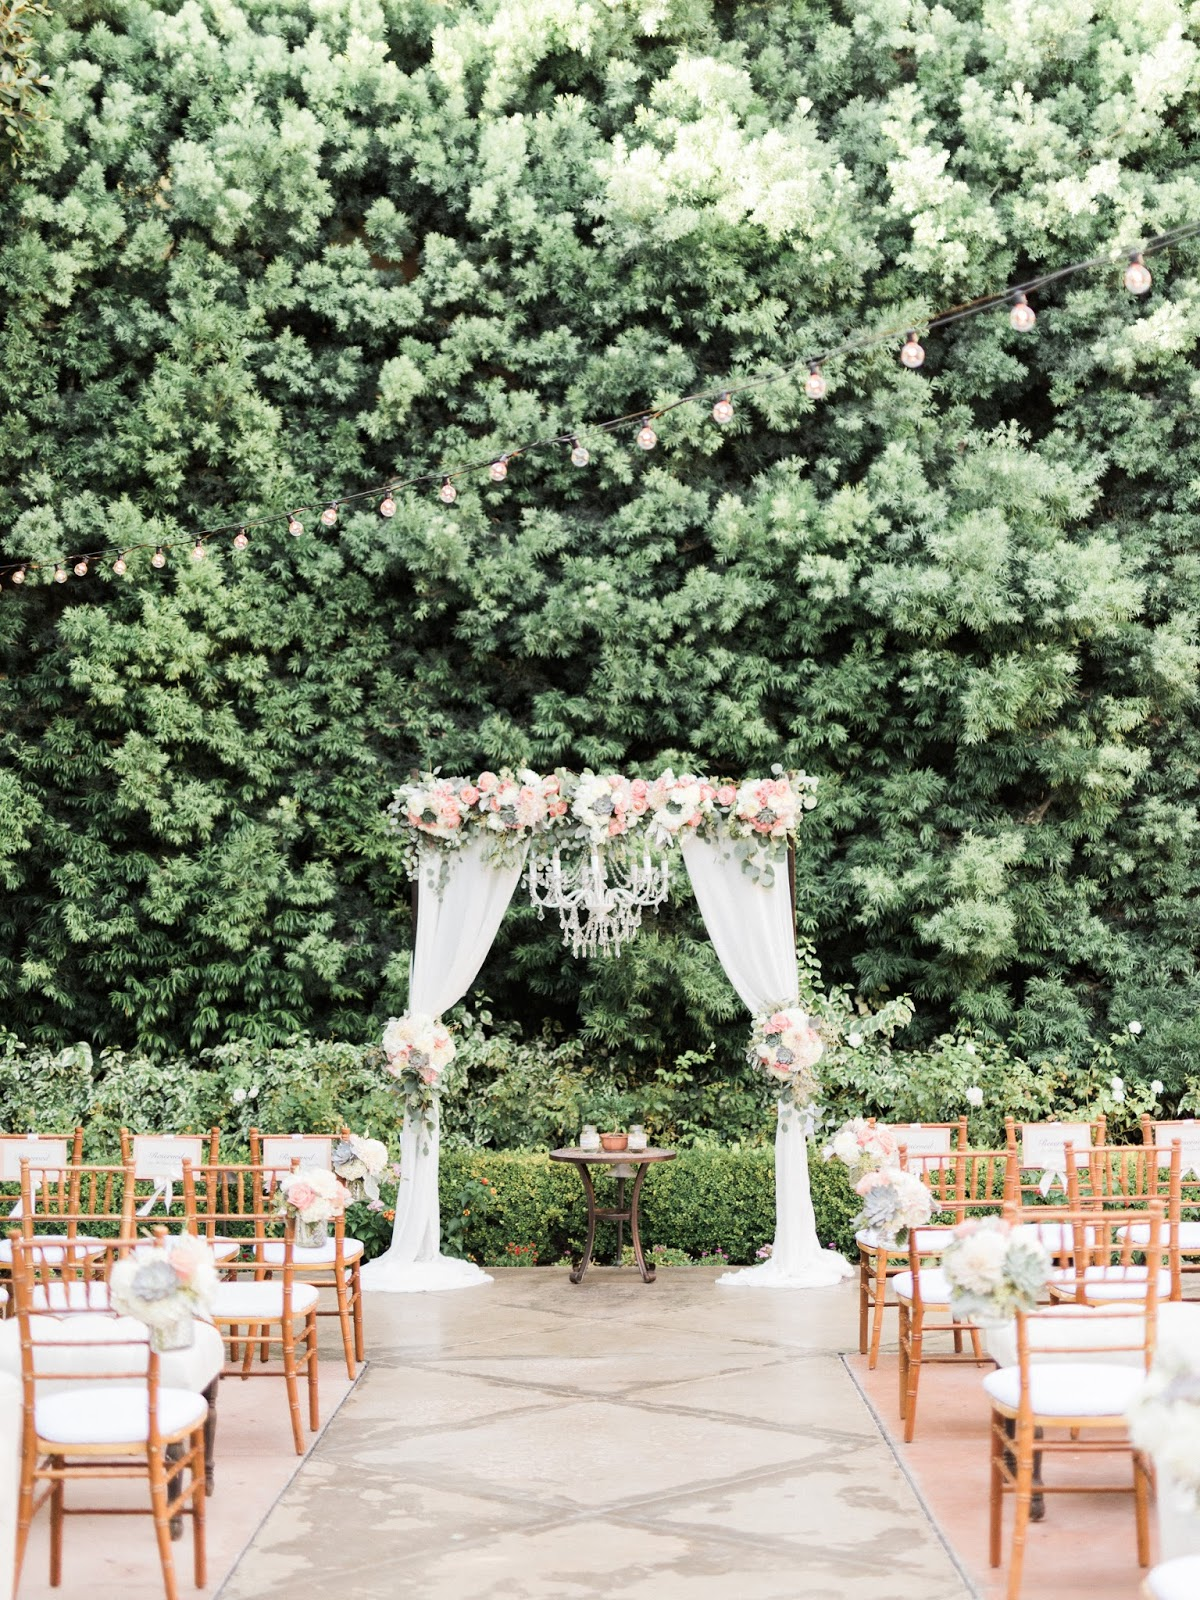 Florals by jenny romantic succulent wedding at franciscan gardens san juan capistrano for Franciscan gardens san juan capistrano